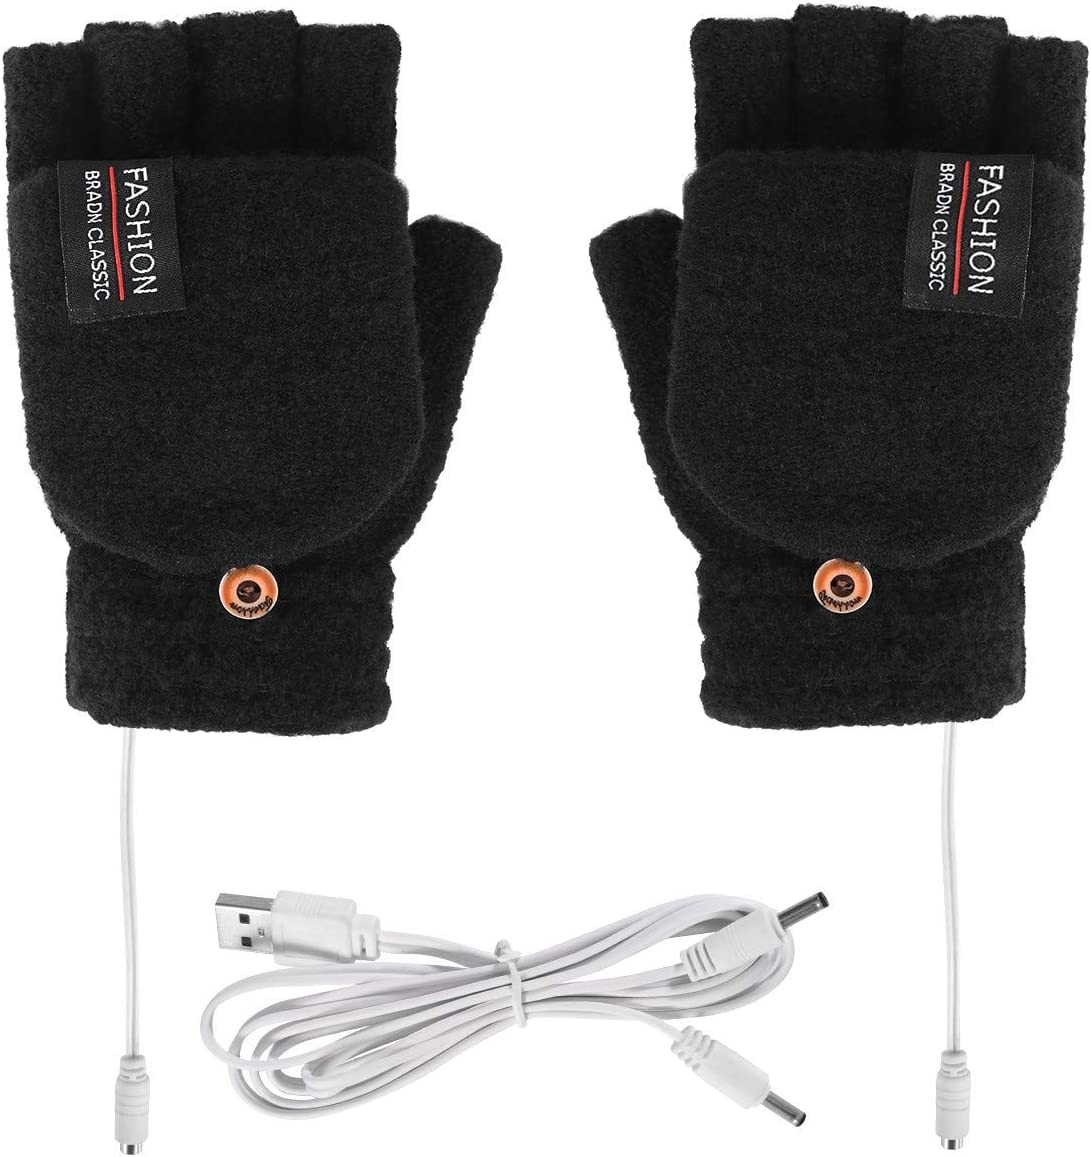 Unisex Women Men USB Heated Gloves Electric Heating Gloves Mitten Winter Warmer Rechargeable Laptop Gloves for Computer Typing Arthritis Hand, Knitting Full& Half Fingerless, Washable (Black)